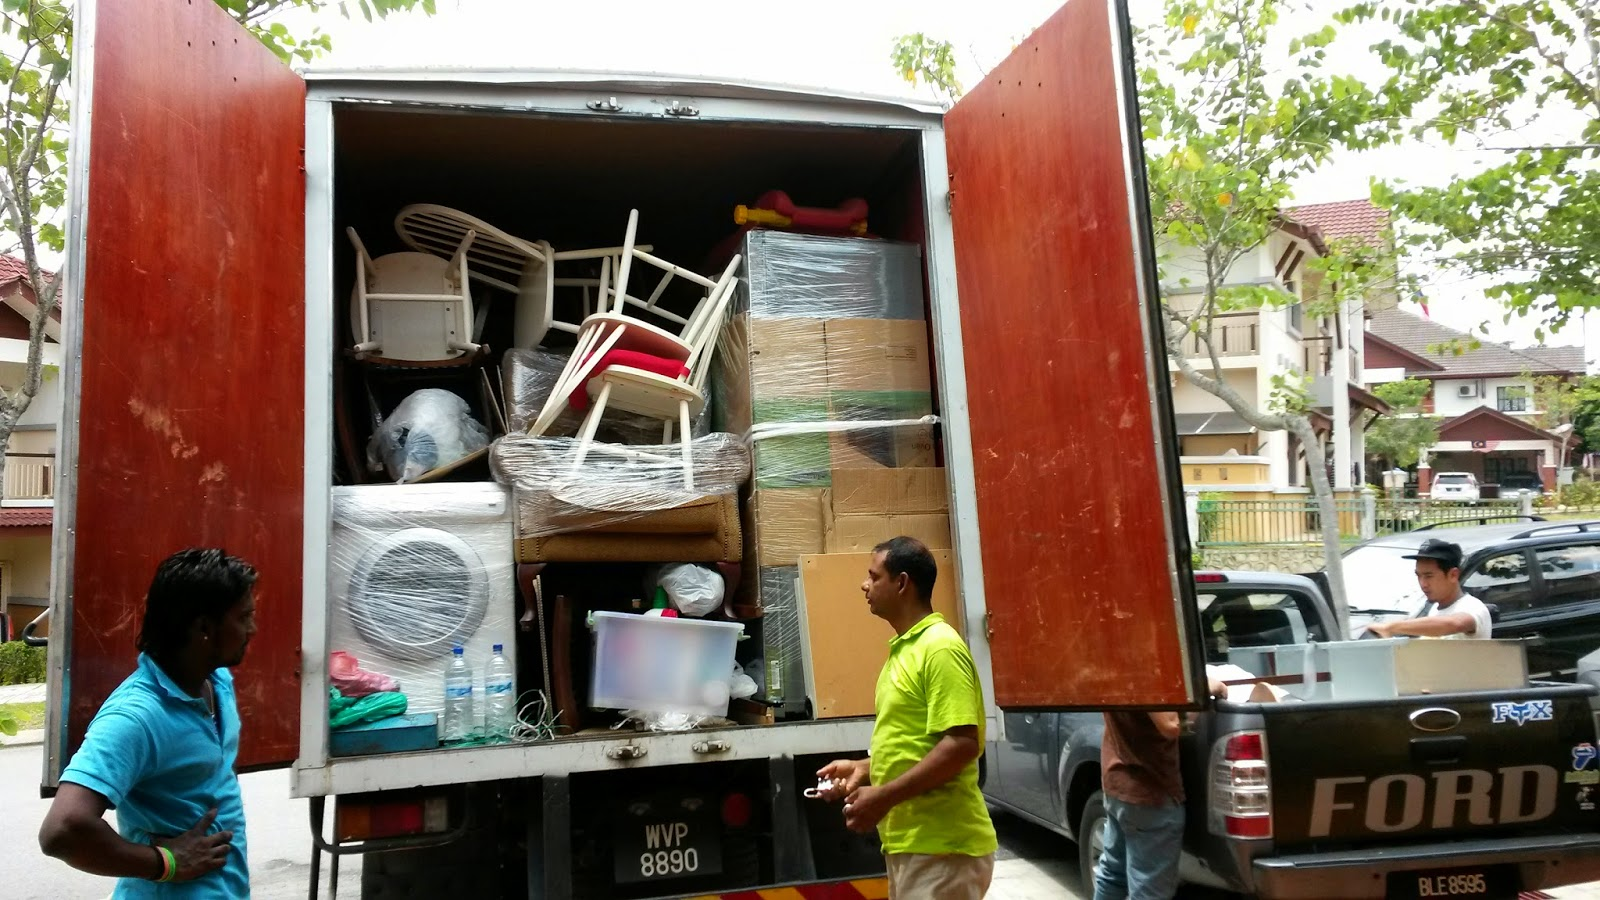 Lorry For Rent, Lorry Rental, Movers, Moving Service ...